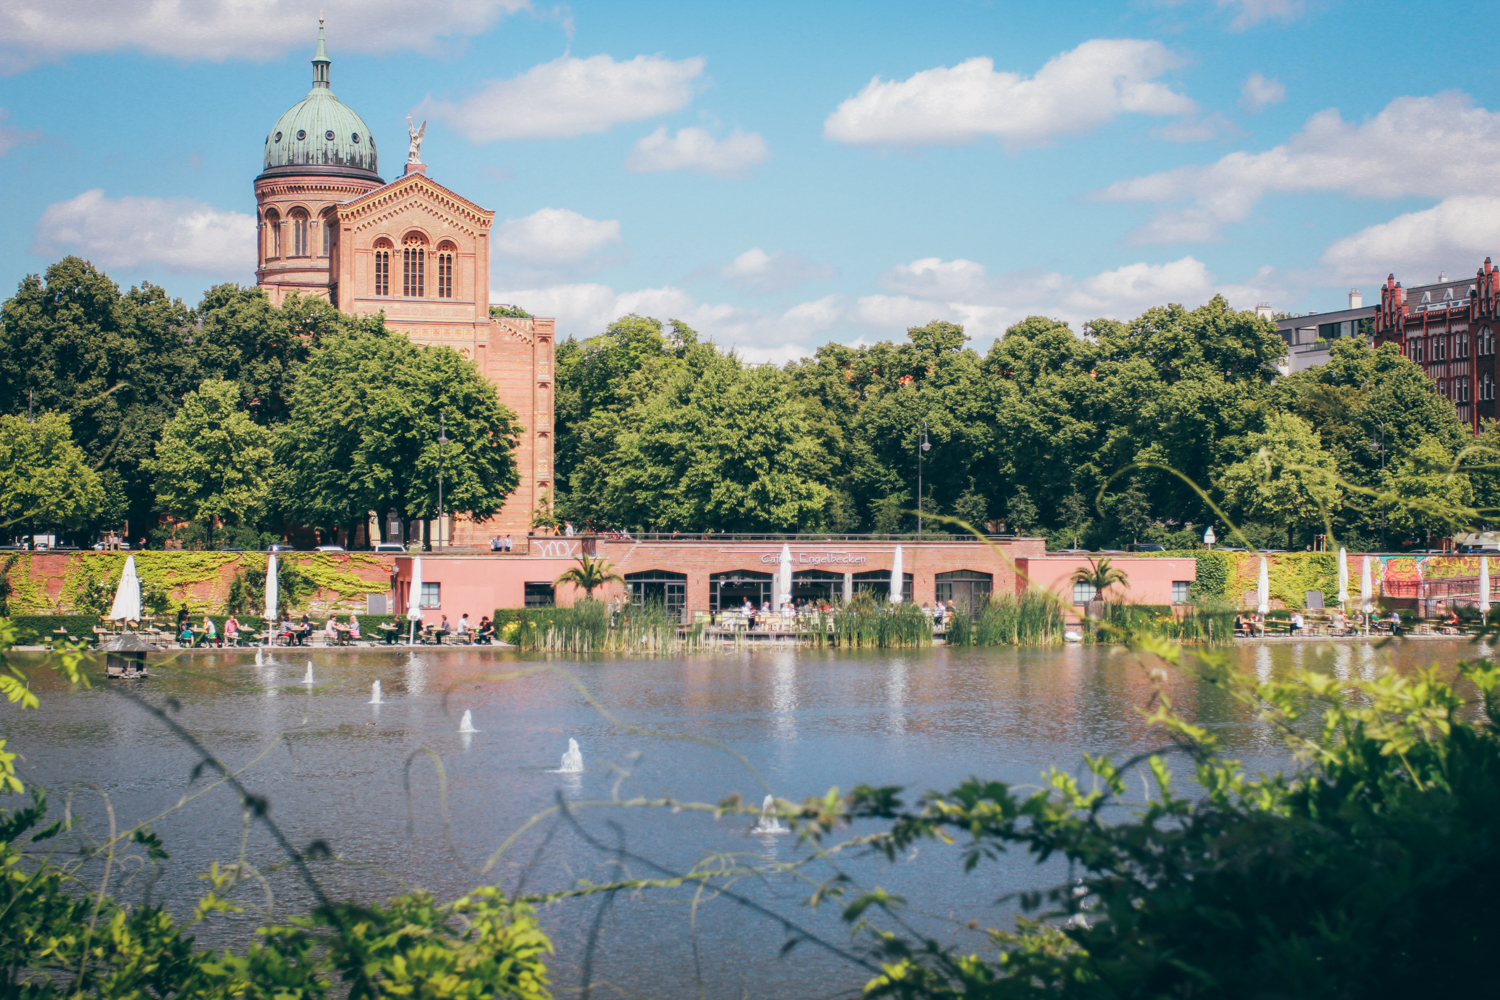 5 Charmante Cafes & Restaurants in Berlin am Wasser